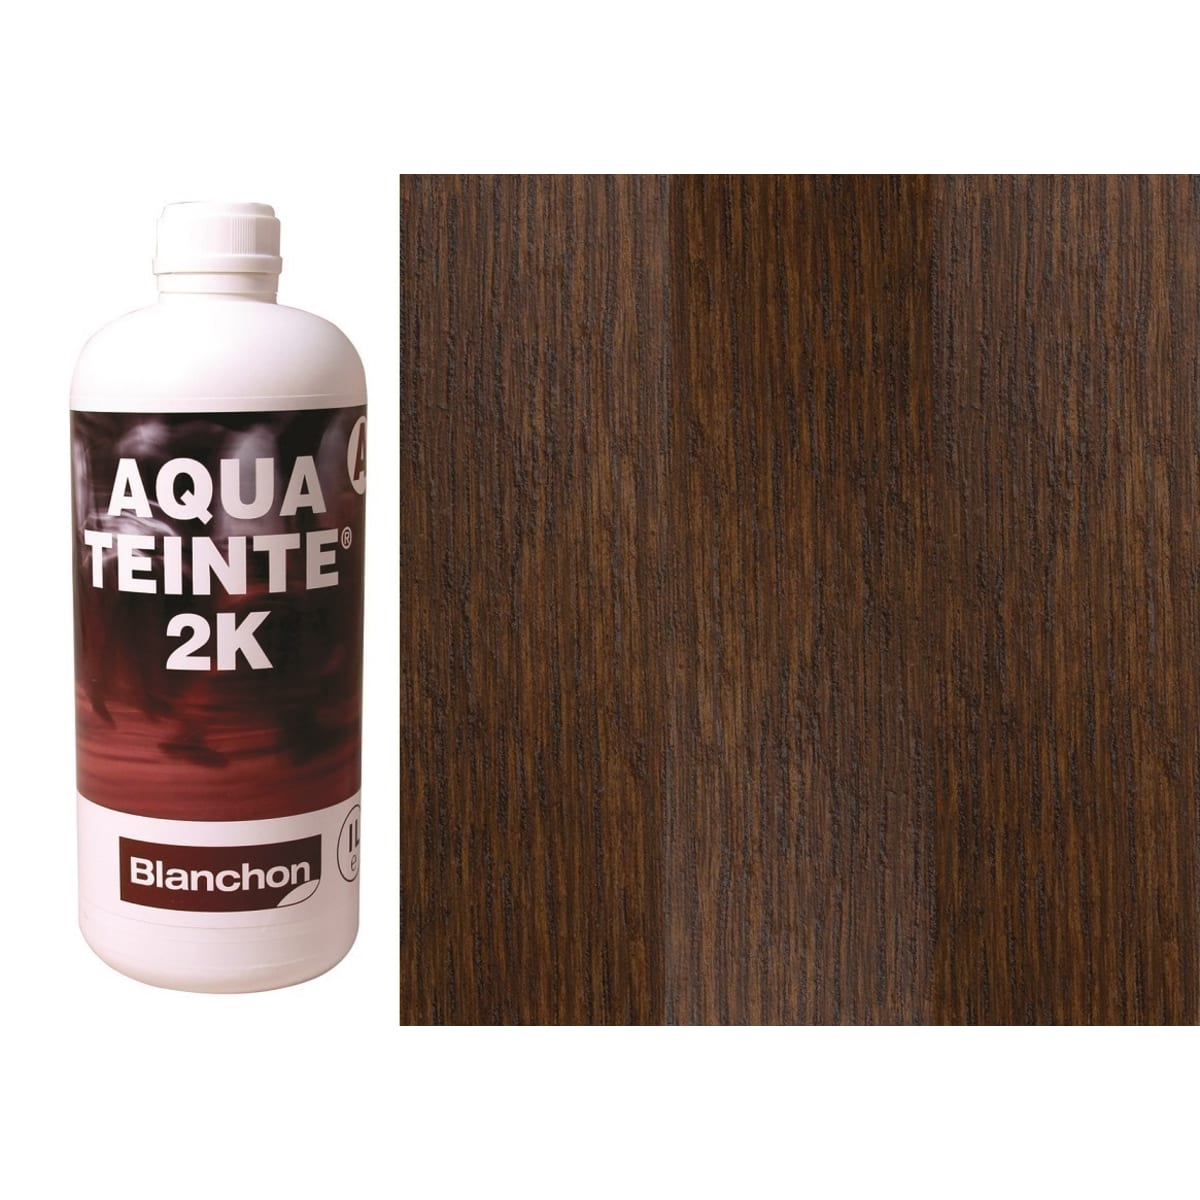 Blanchon Aquateinte 2k Ipe 1l Coloured Stains Amp Ageing